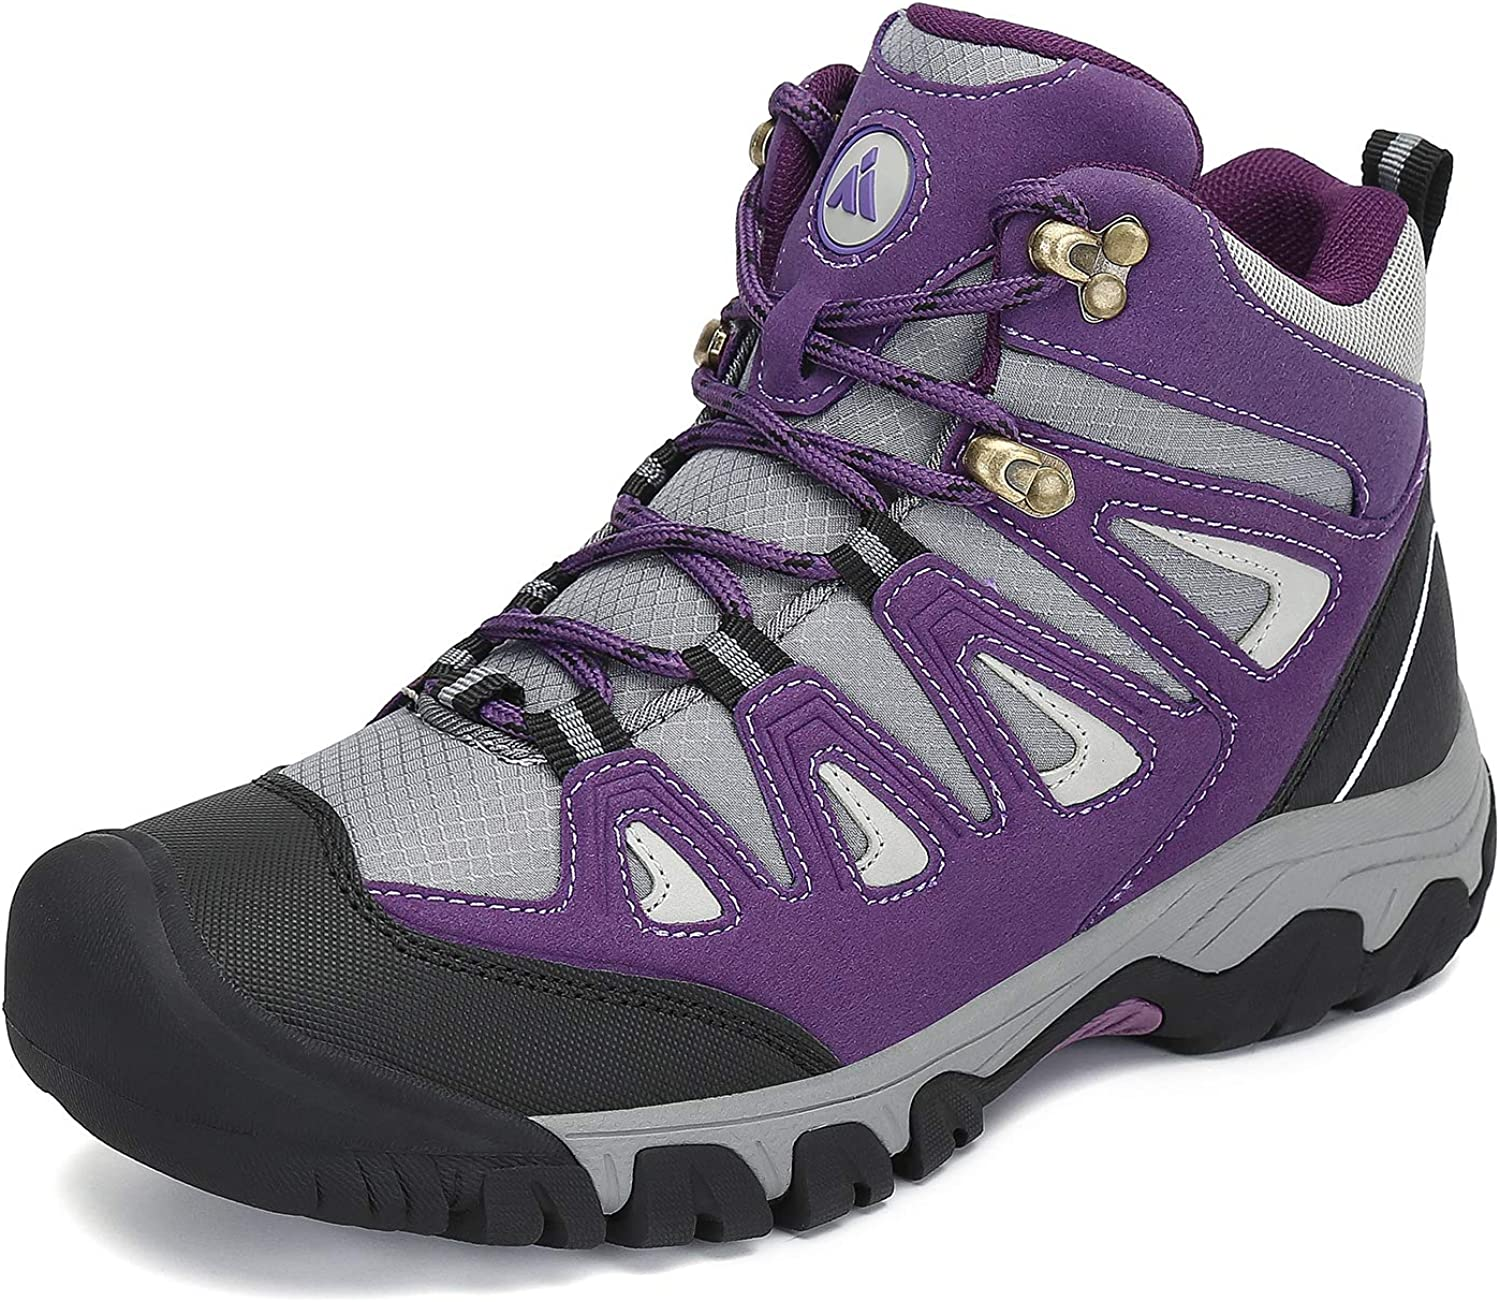 Mens Womens Hiking New life Boots Anti-Collision Outdoor Breatha Limited price Athletic